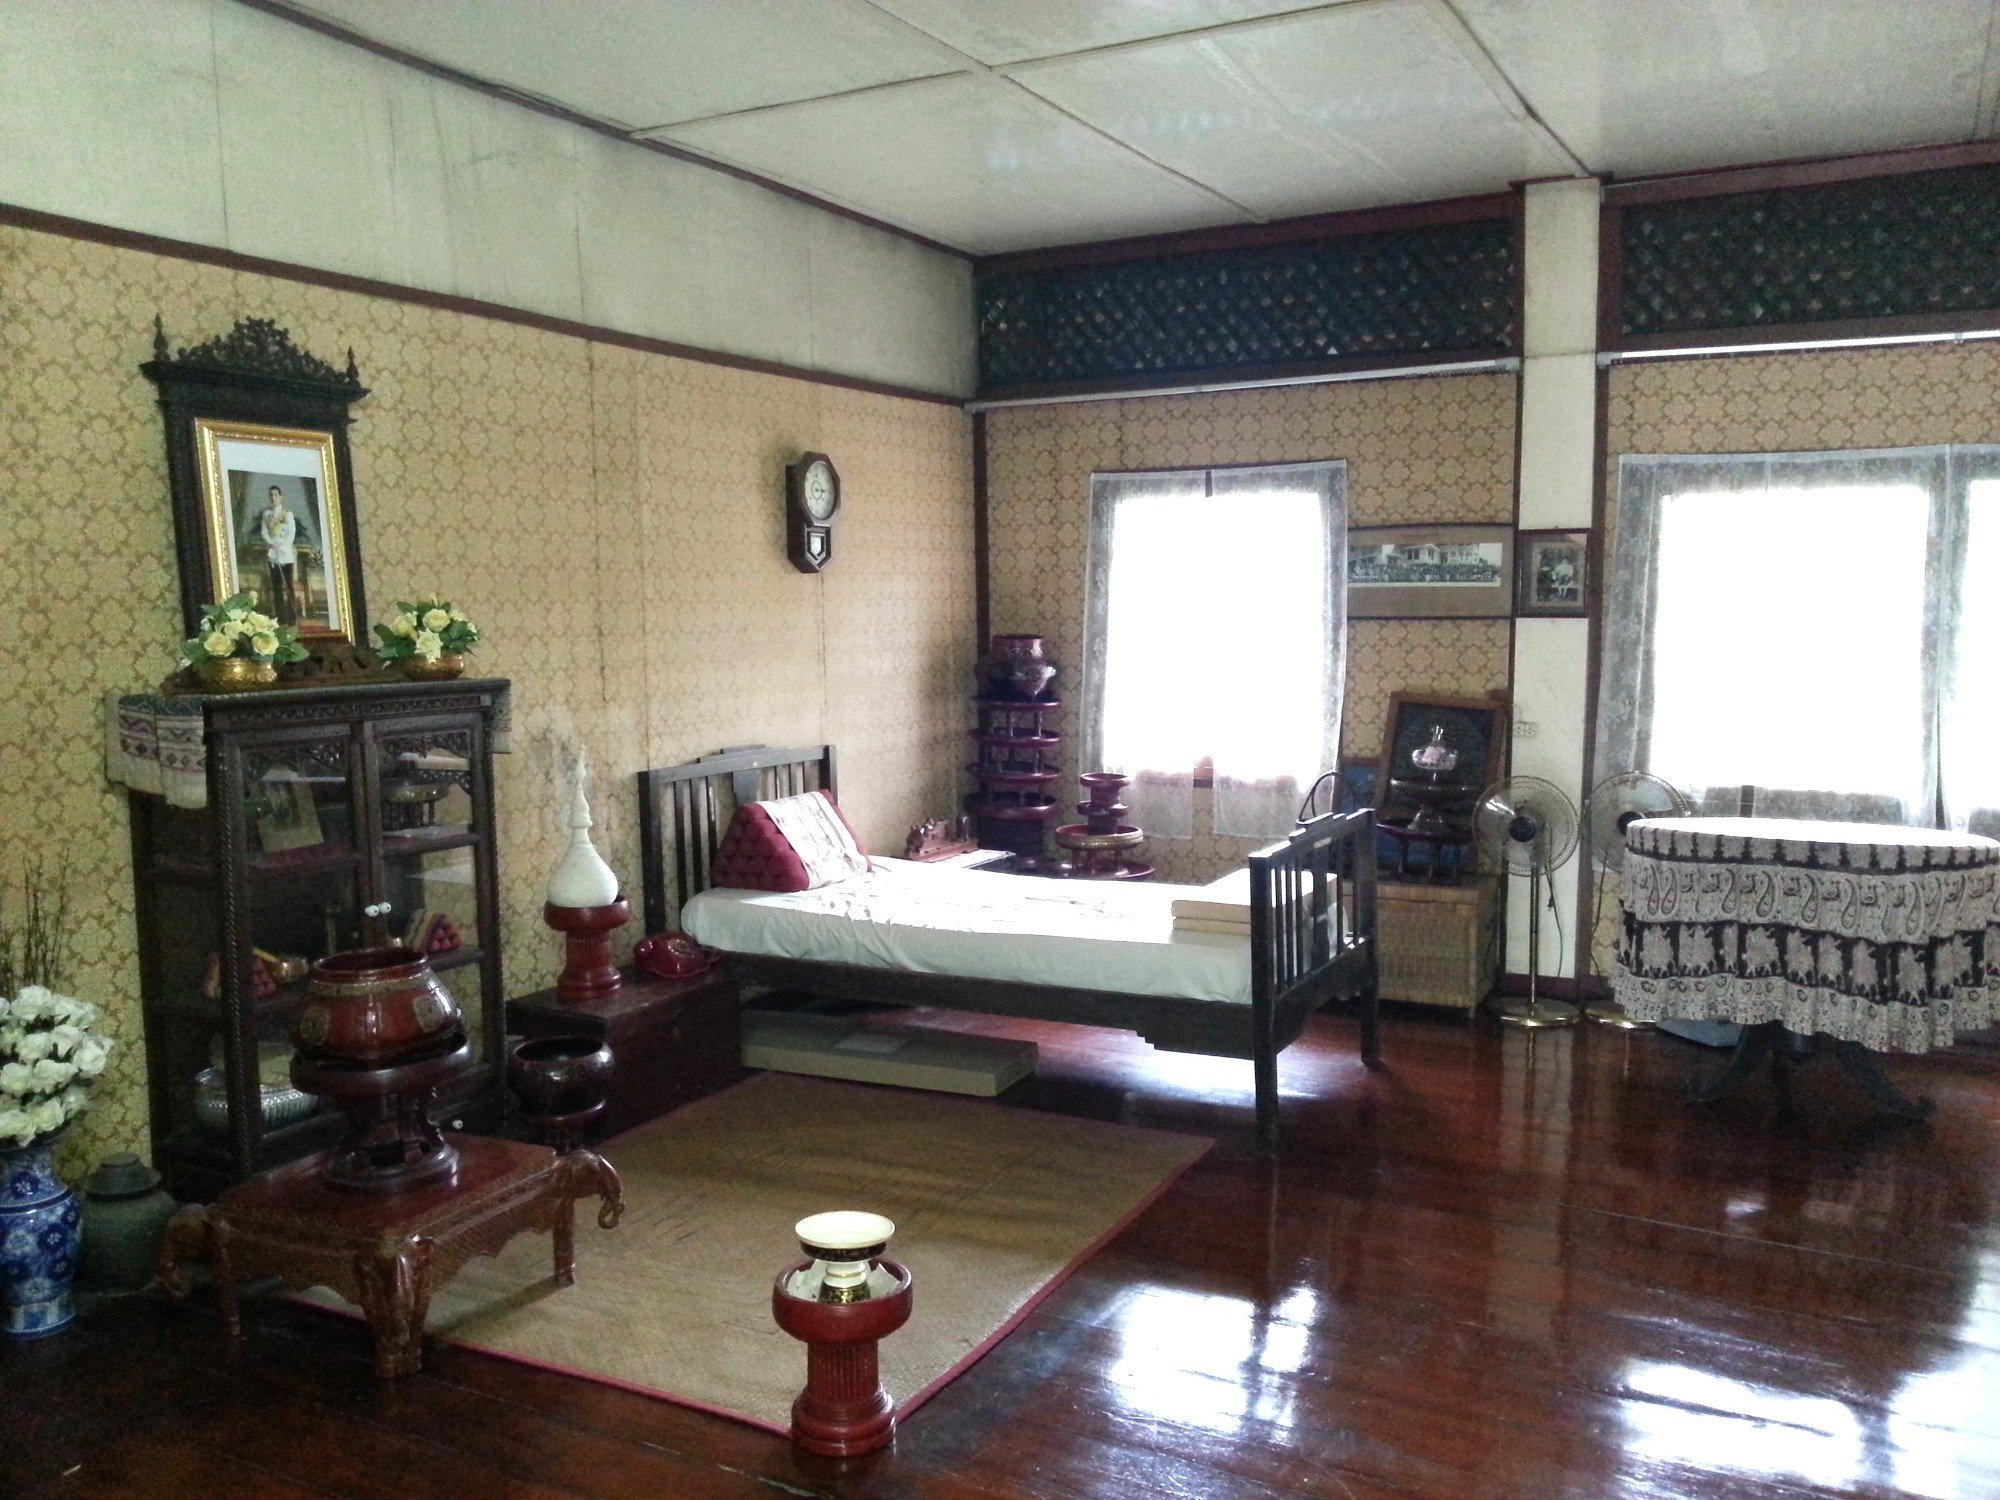 Bedroom at Baan Sao Nak